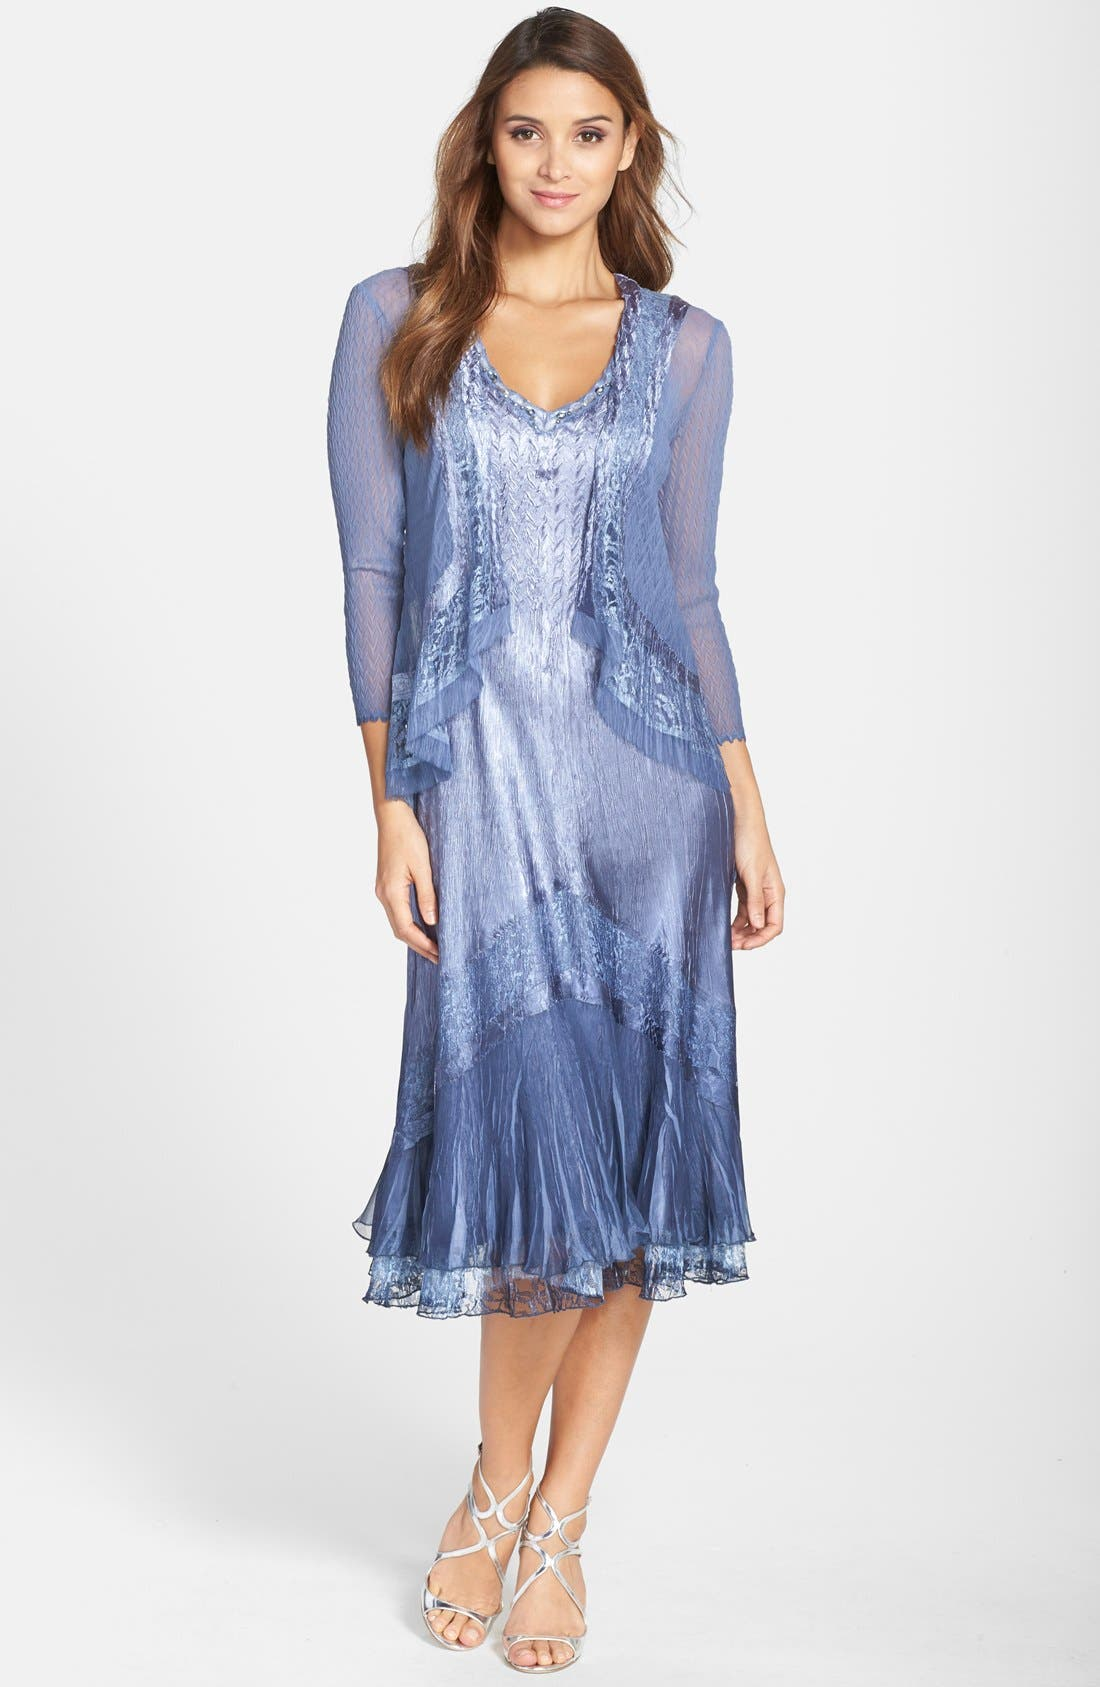 Komarov Embellished Lace Trim Charmeuse Dress & Jacket